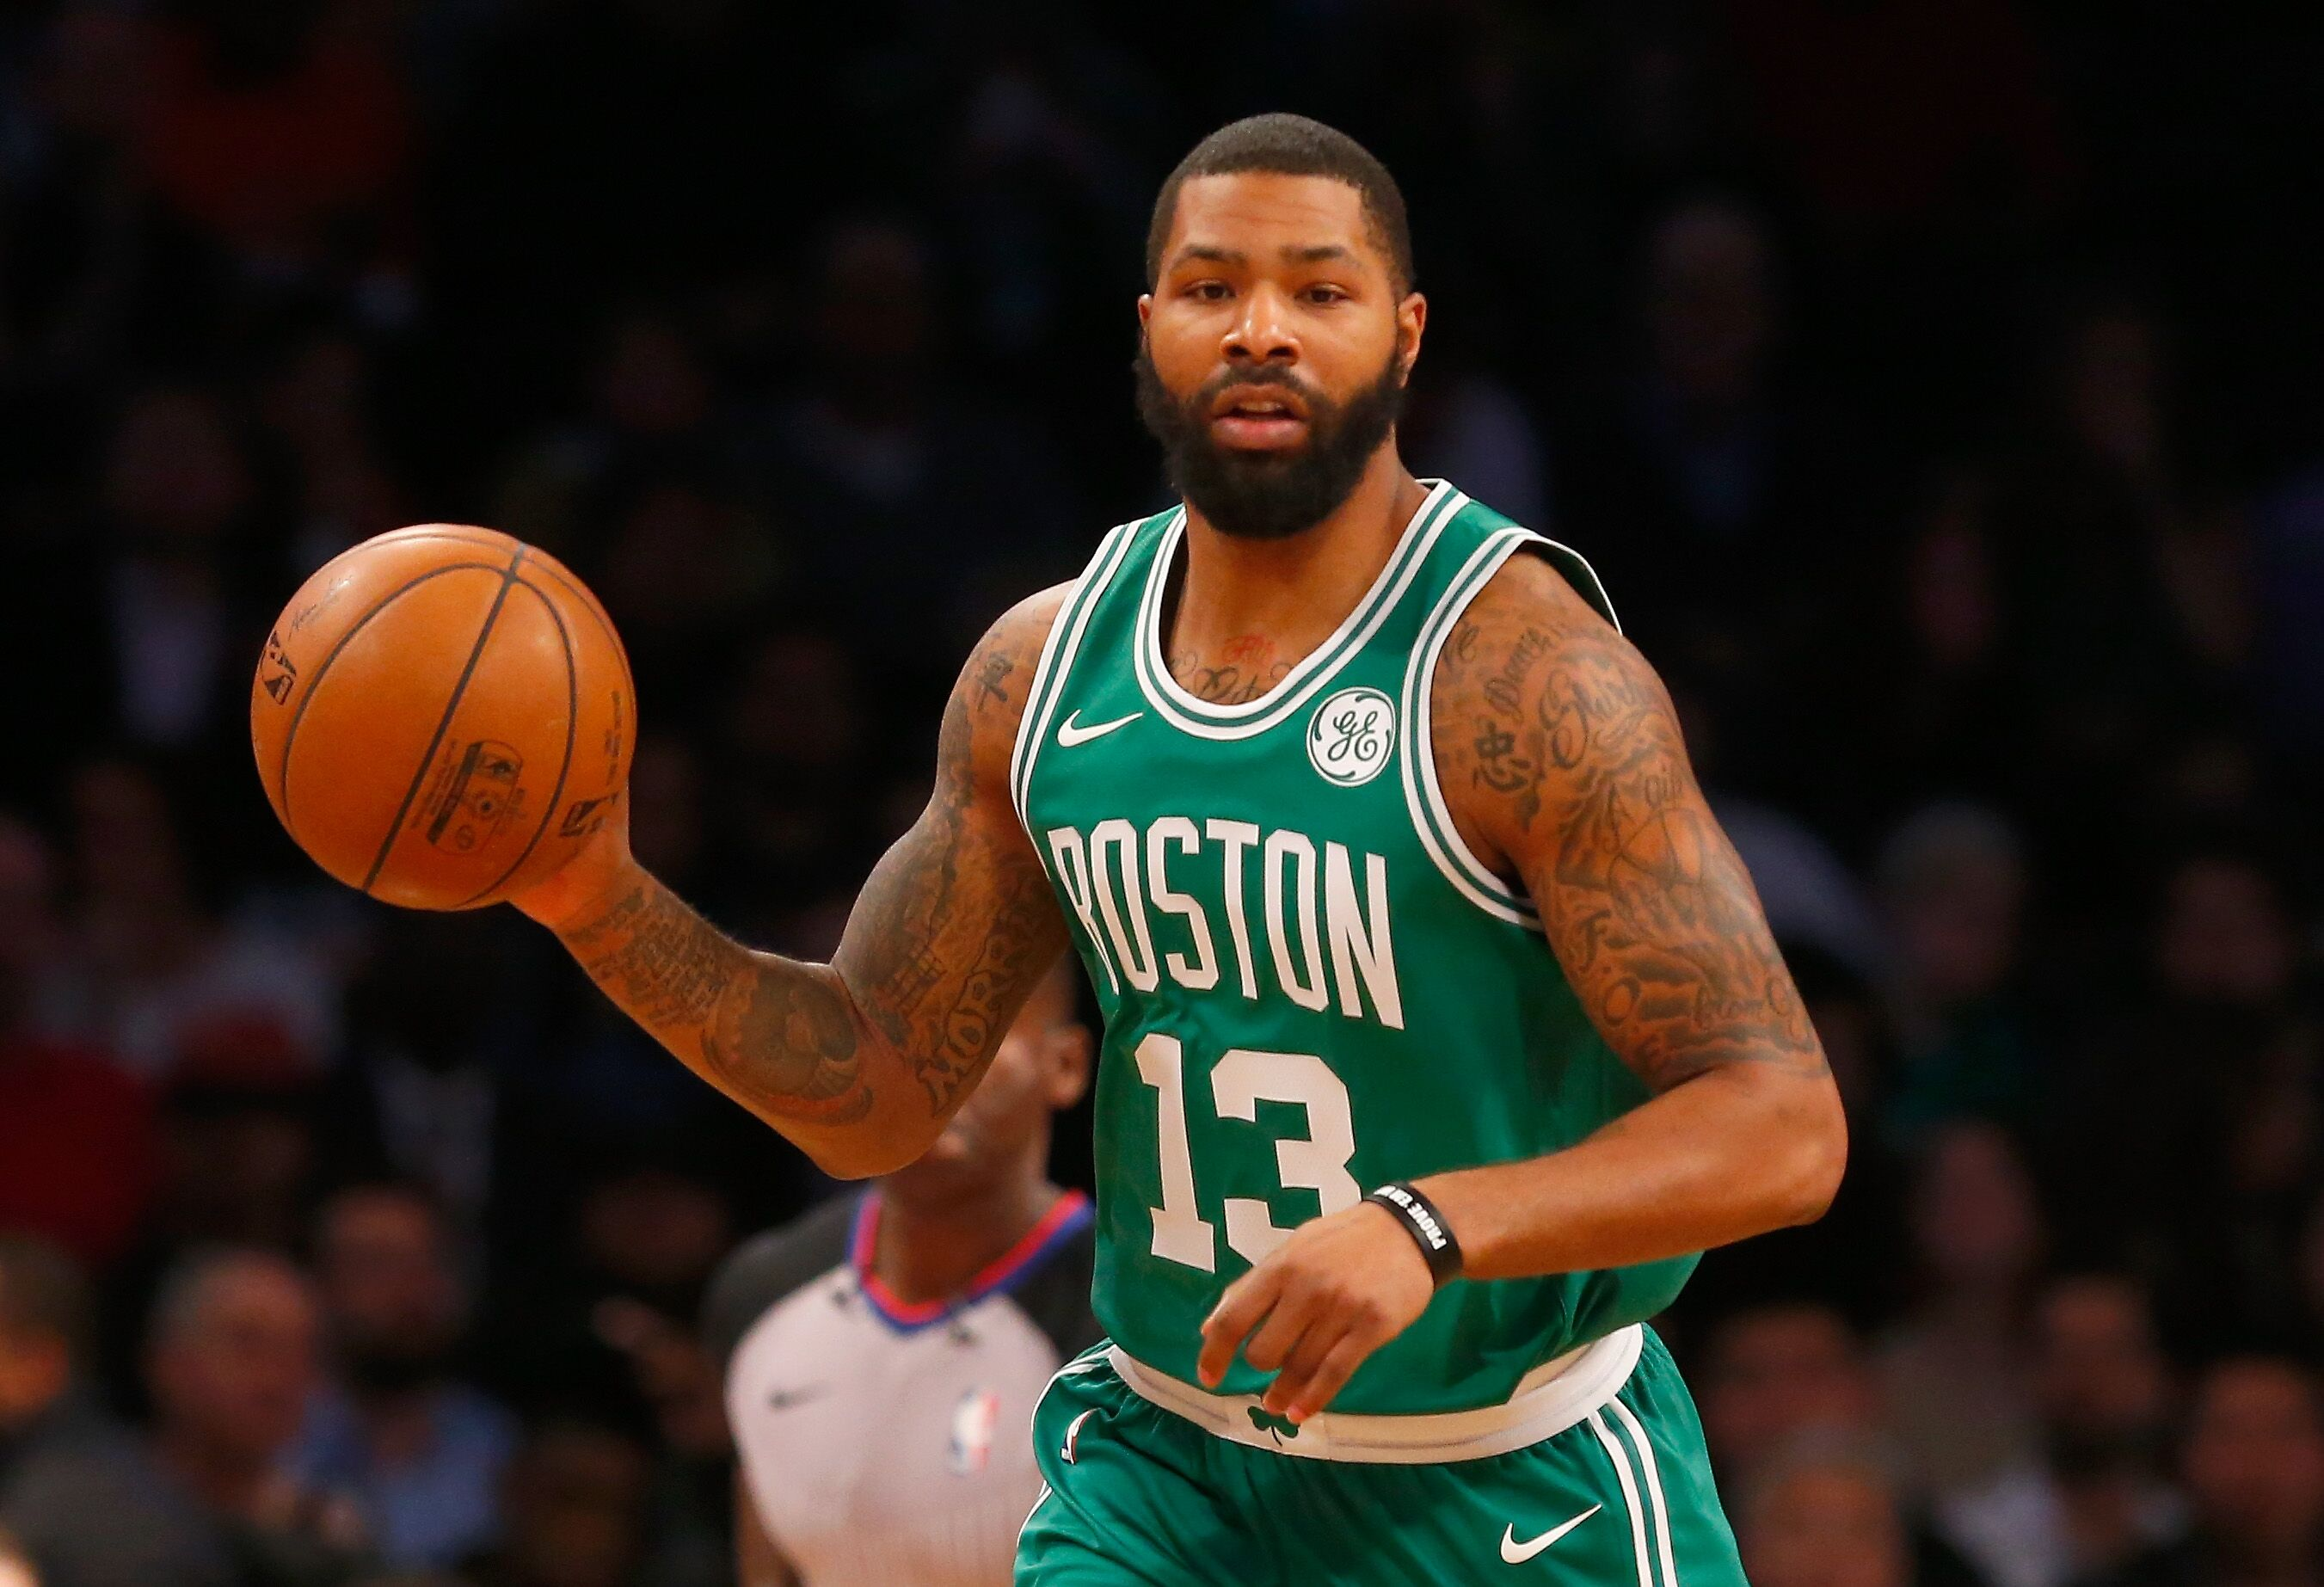 Boston Celtics: Life with Marcus Morris sidelined by injury